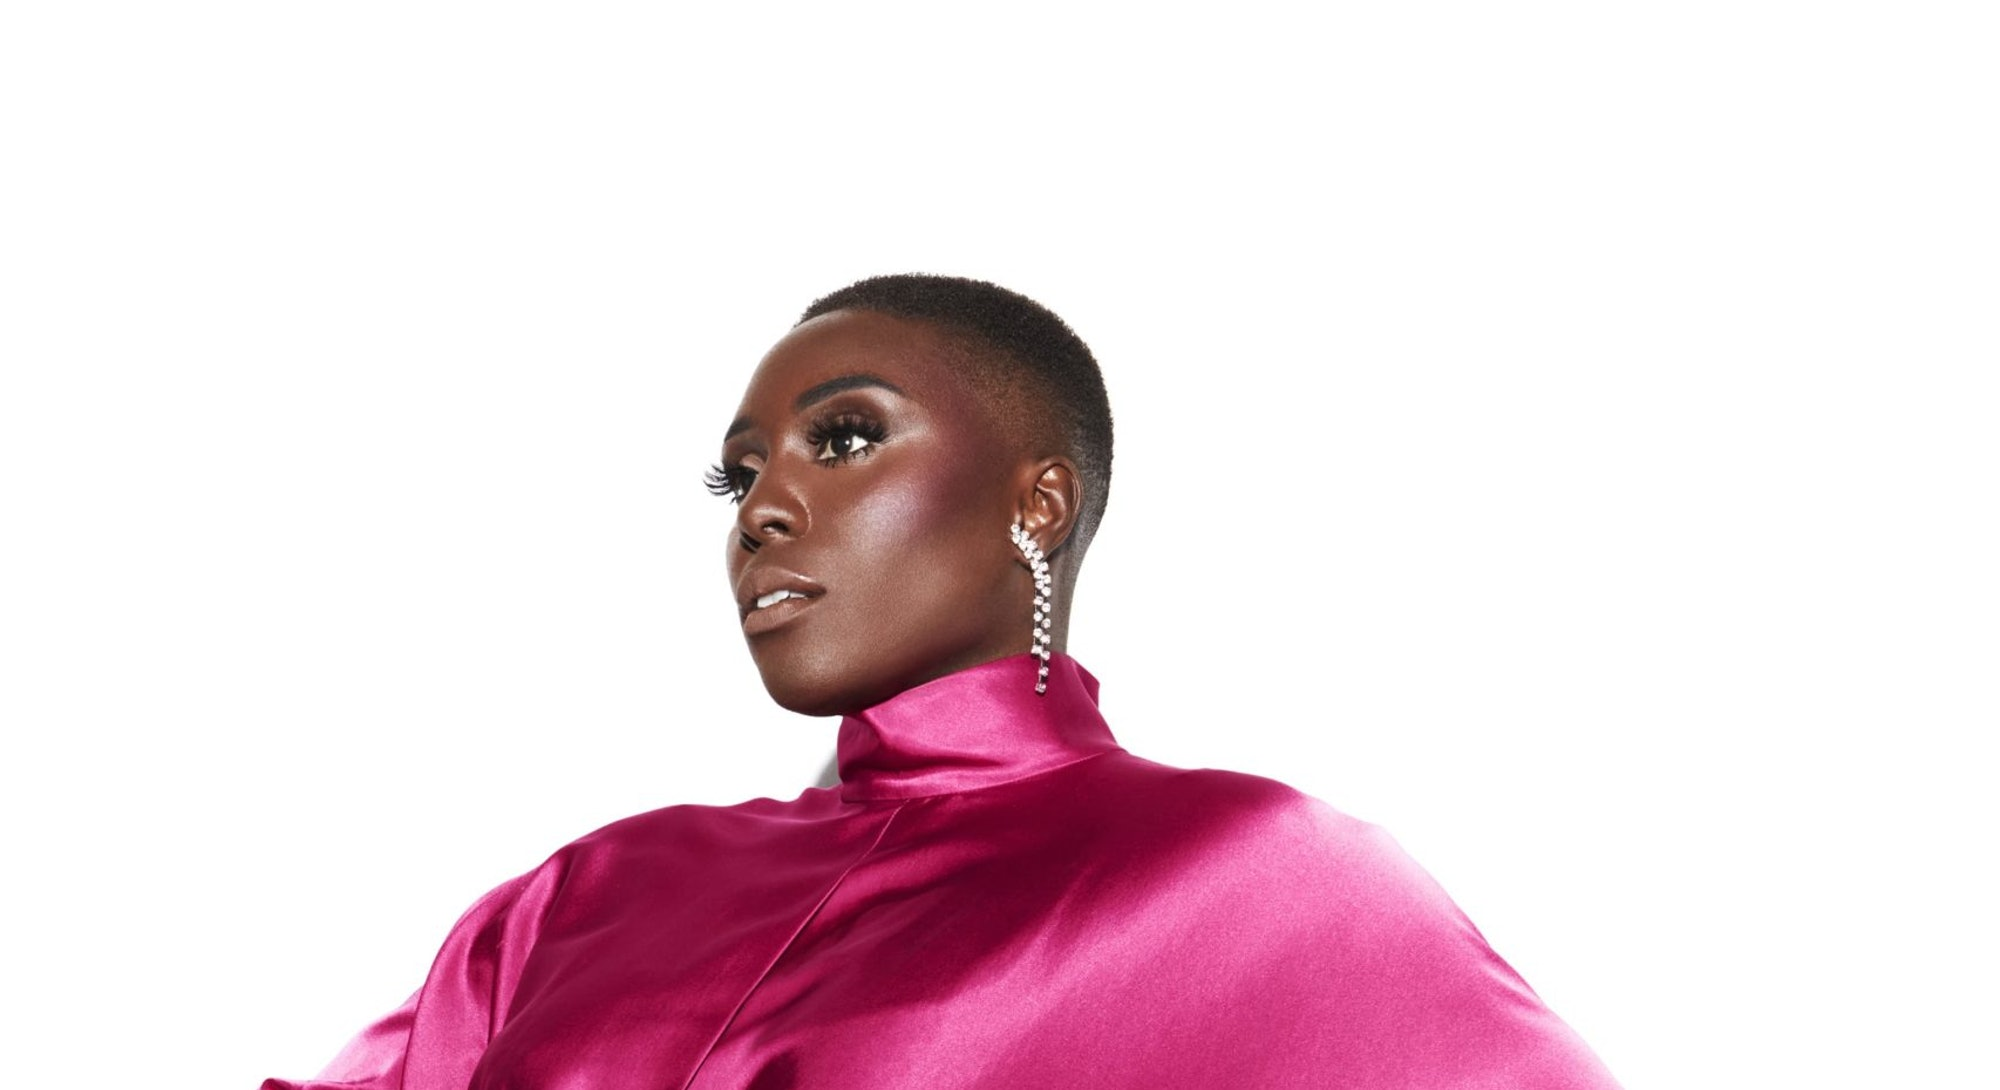 A portrait of Laura Mvula in a pink satin dress.